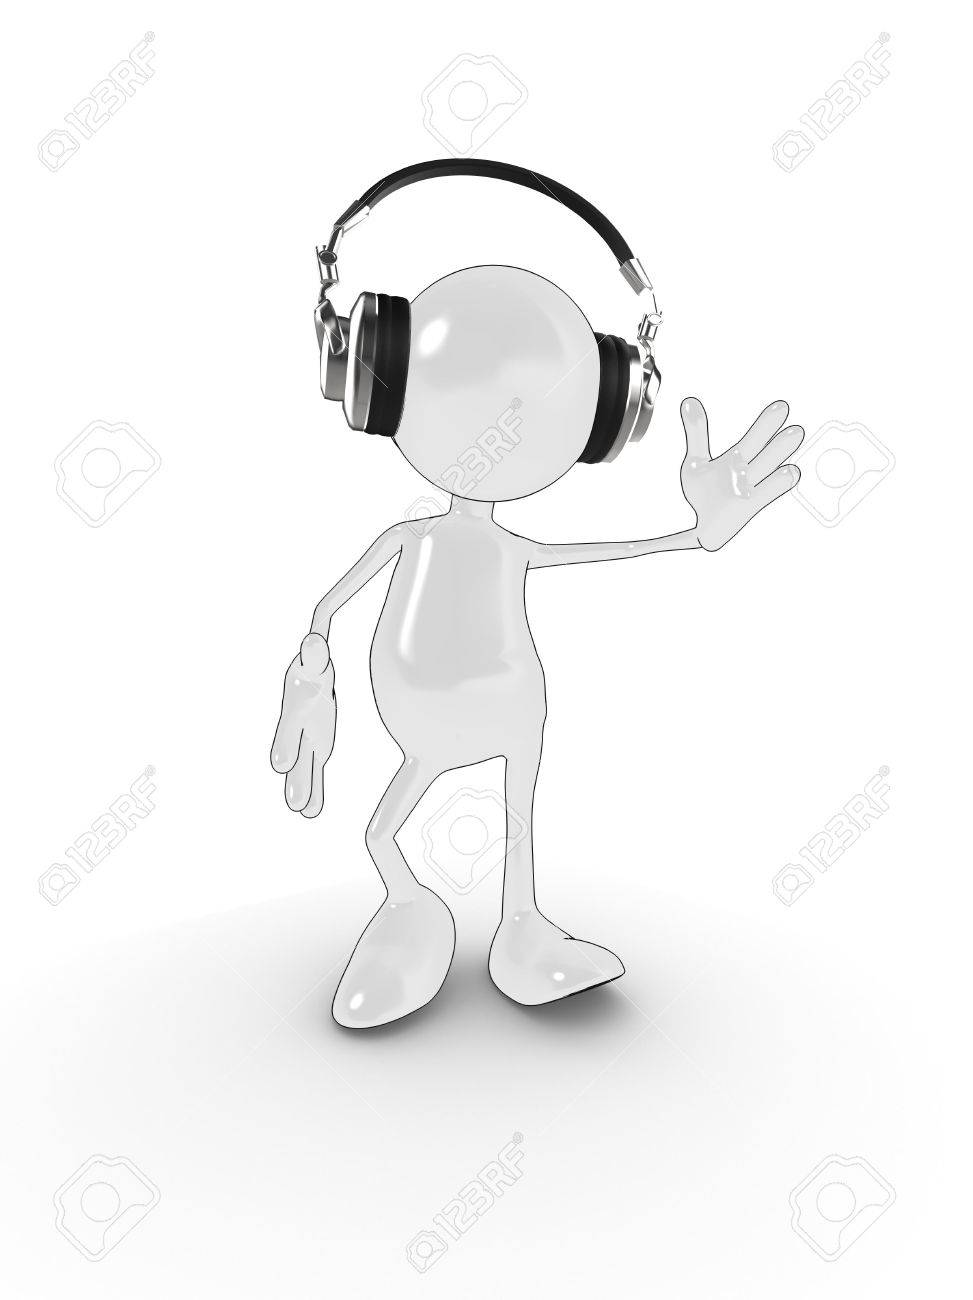 3d cartoon character with headphones dancing to music. Please see my portfolio for more in the series. Stock Photo - 5700313